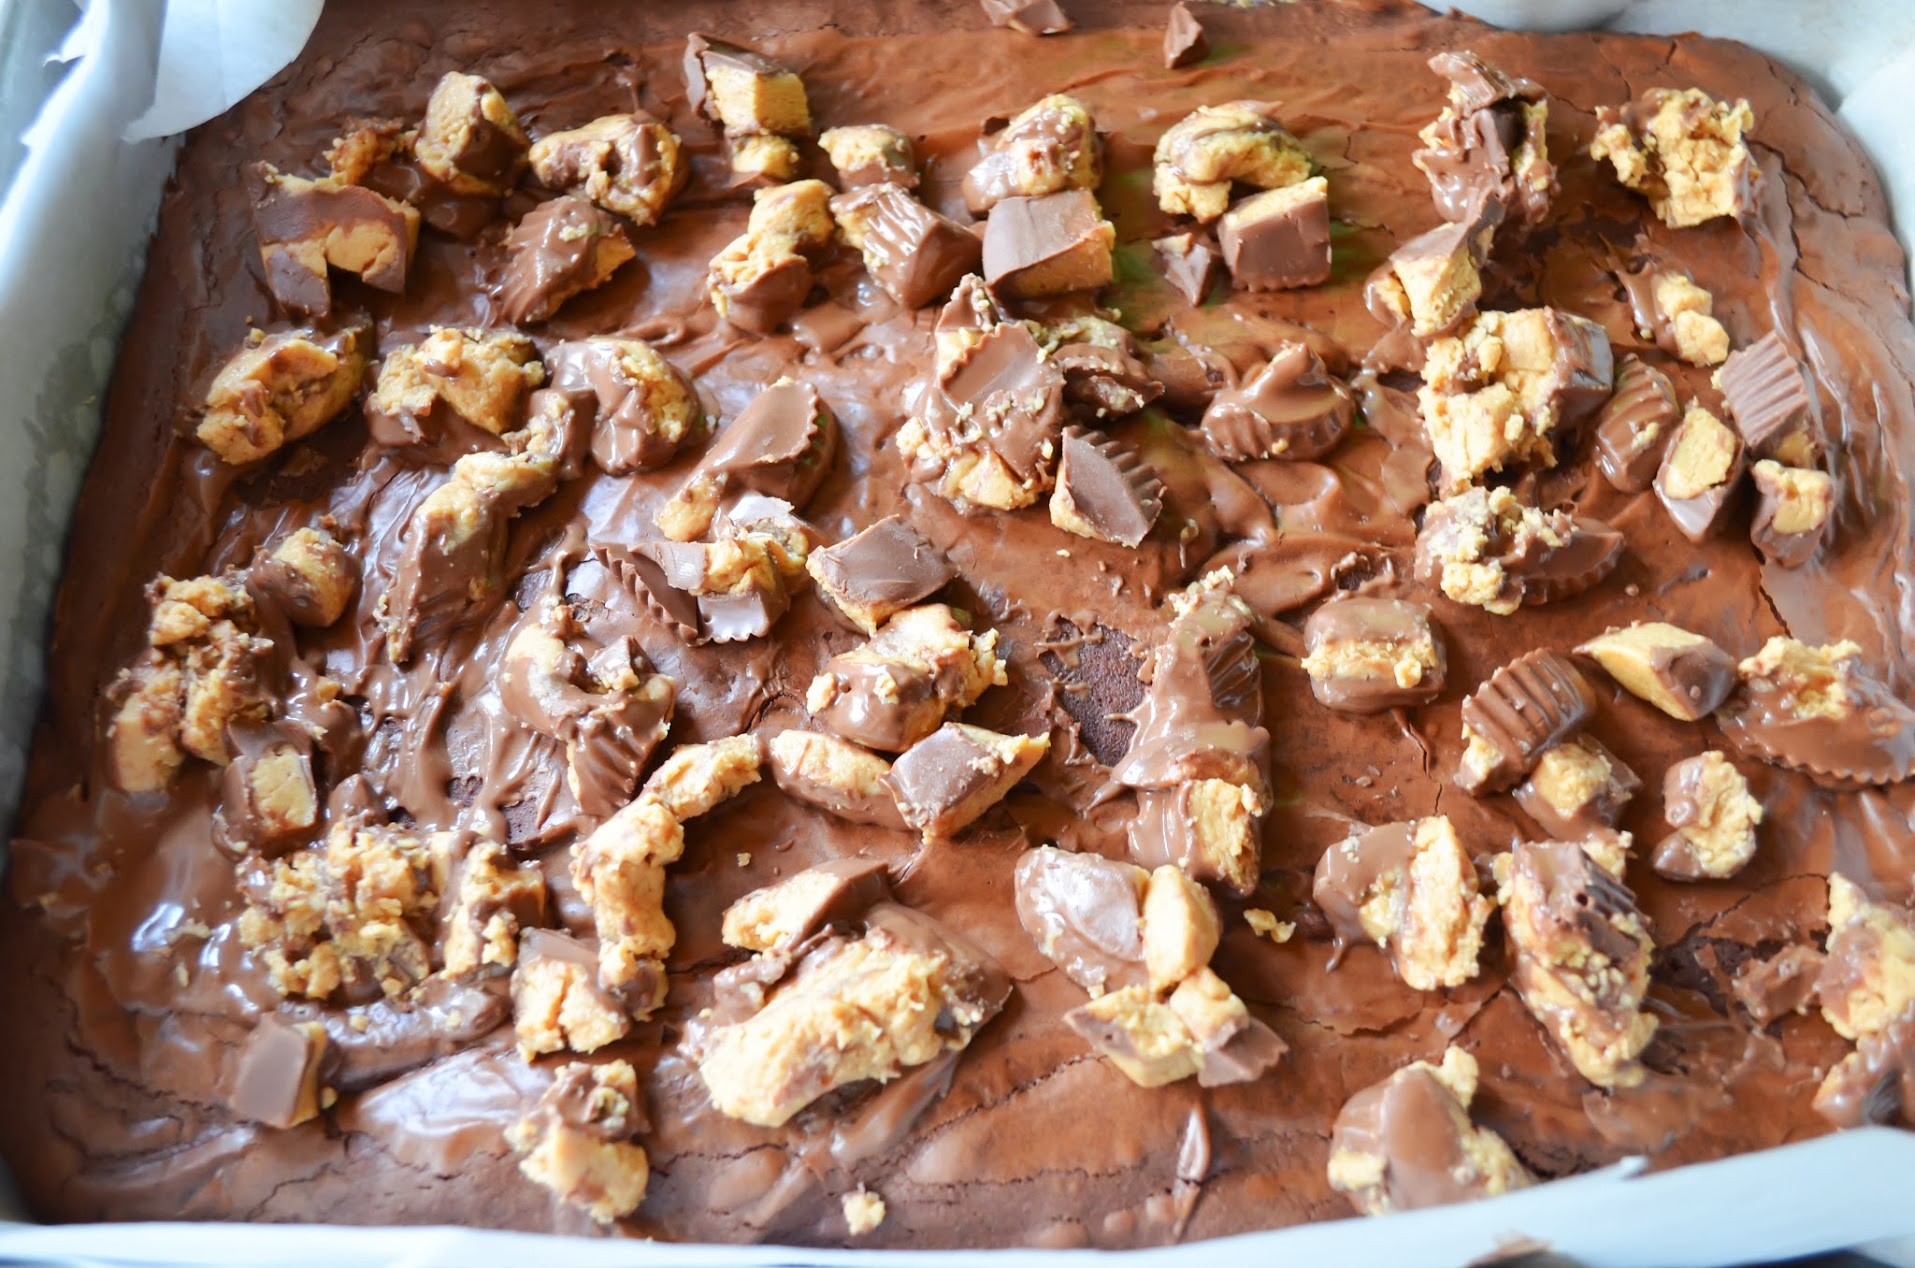 Peanut-Butter-Cup-Crunch-Brownies-Peanut-Butter-Cup.jpg